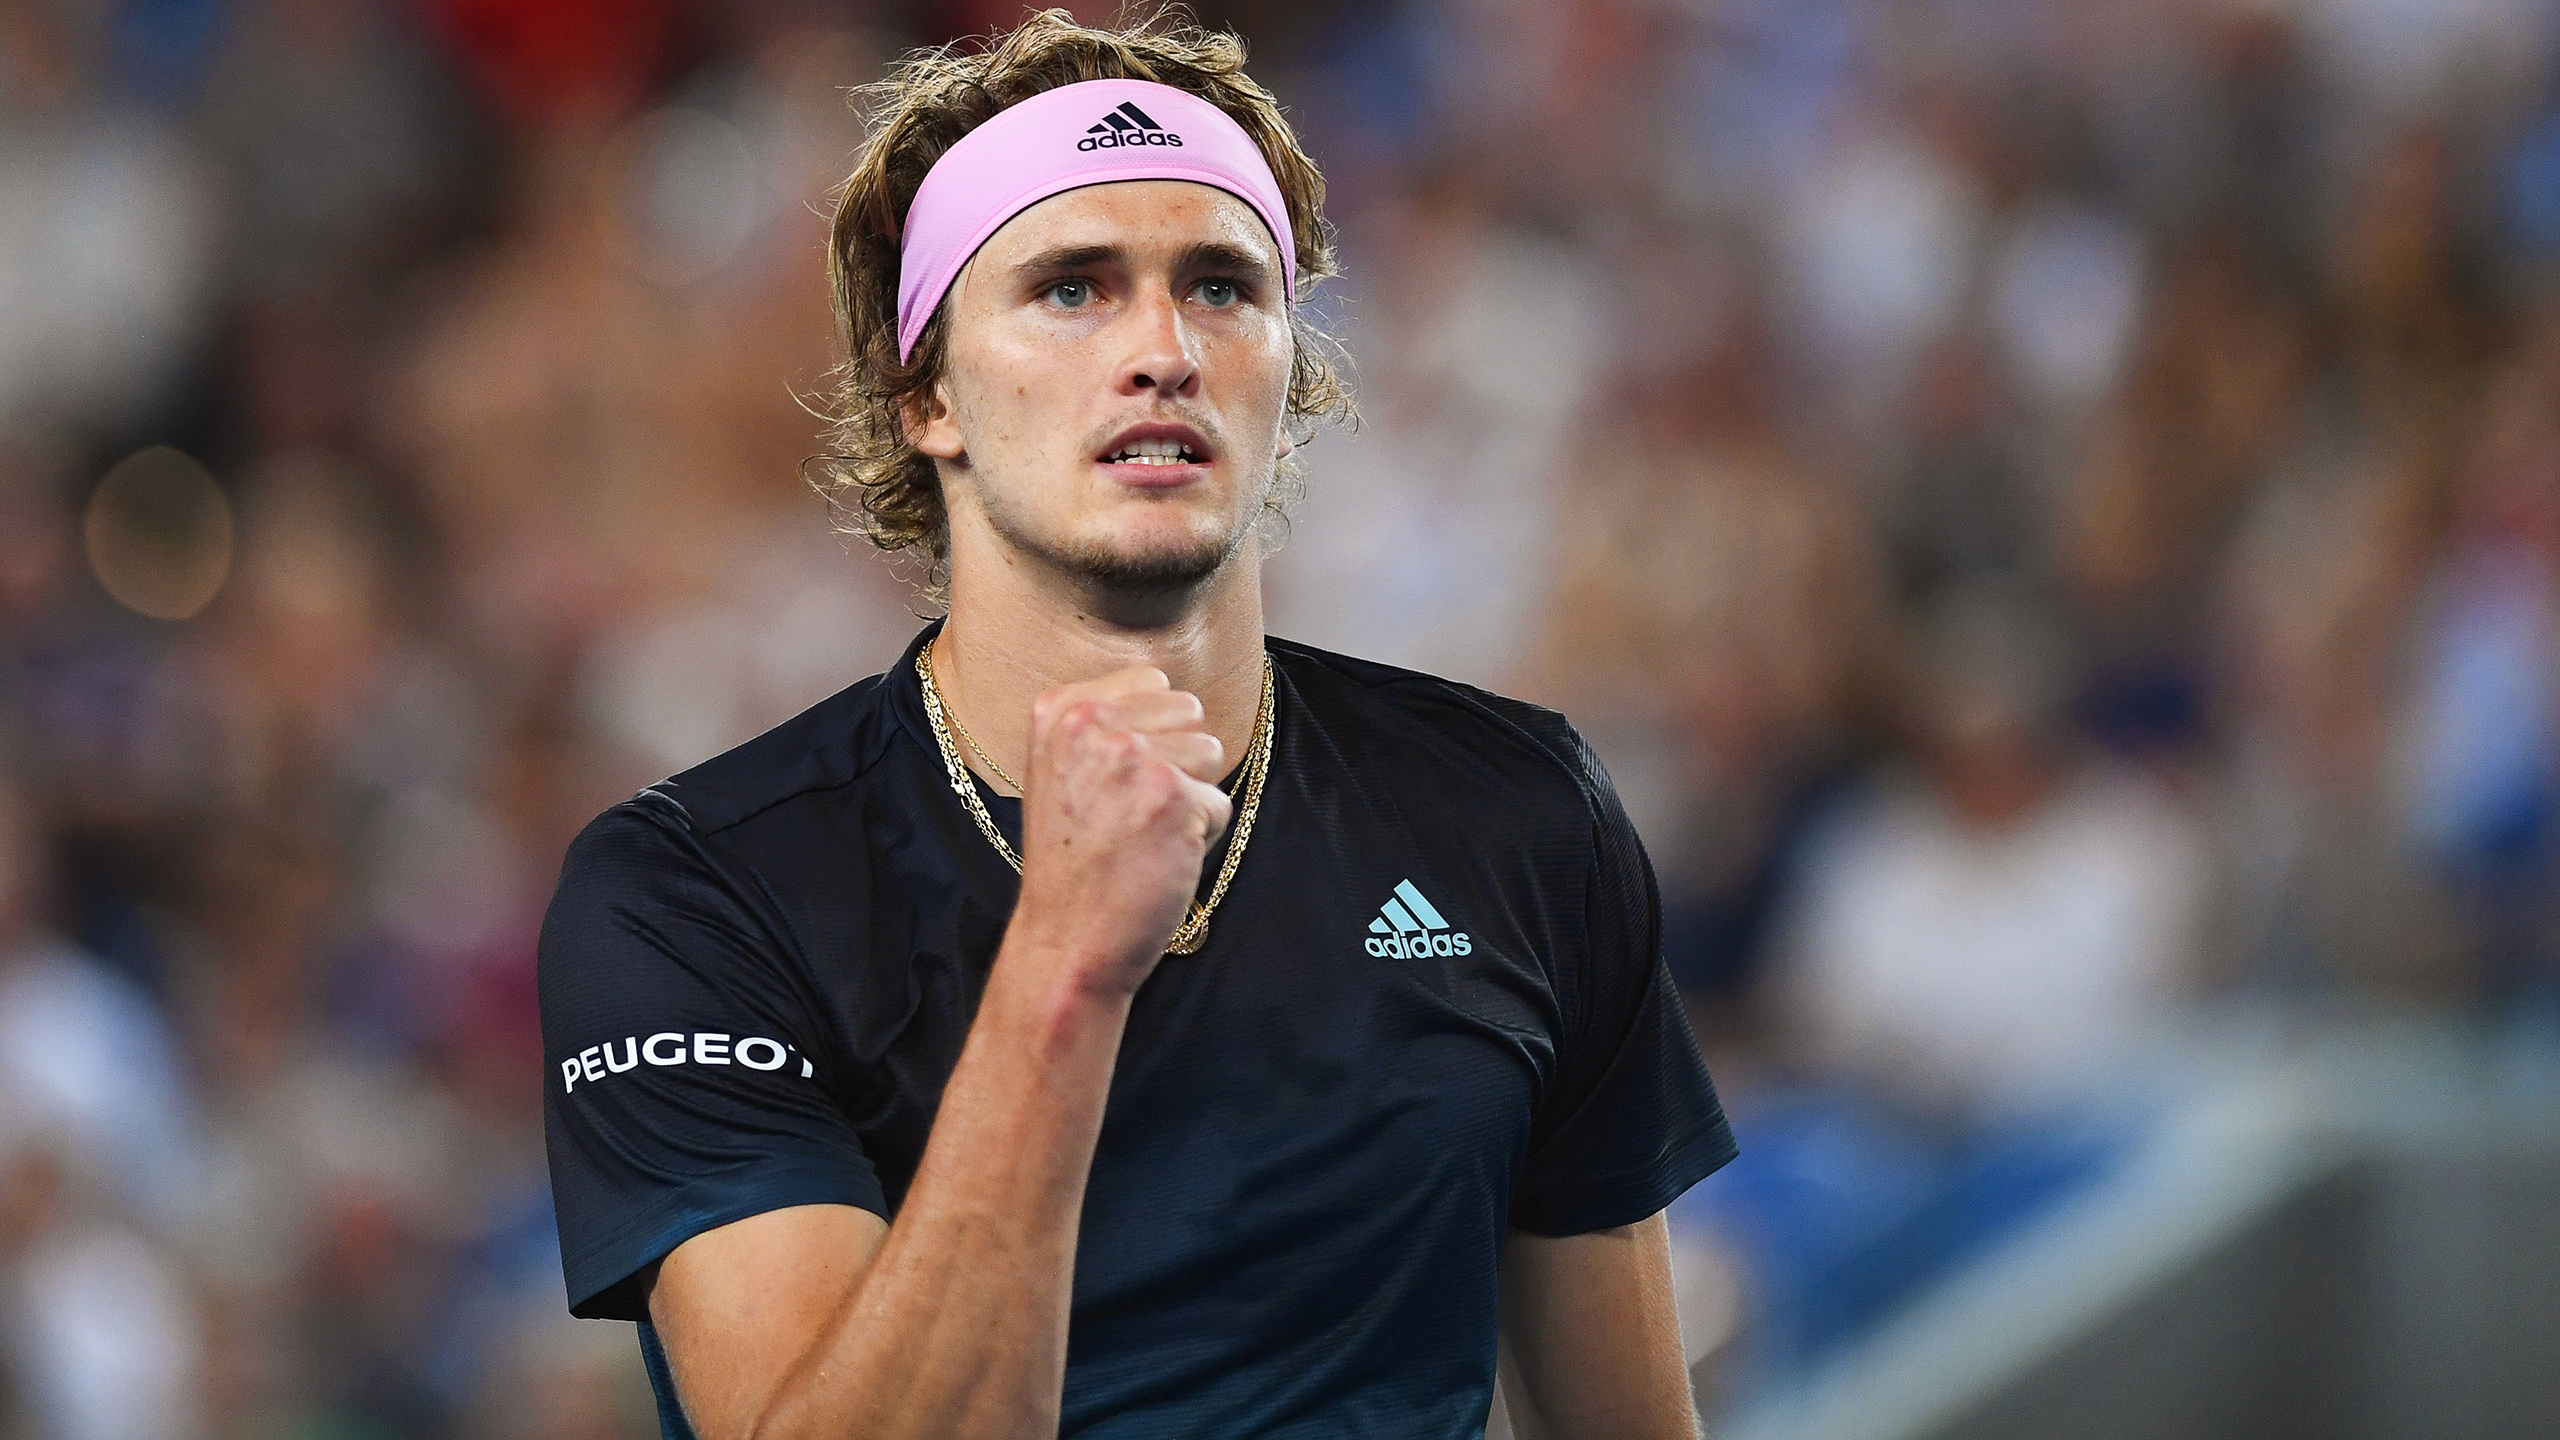 (4) A. Zverev vs. Bolt (Men's Third Round)